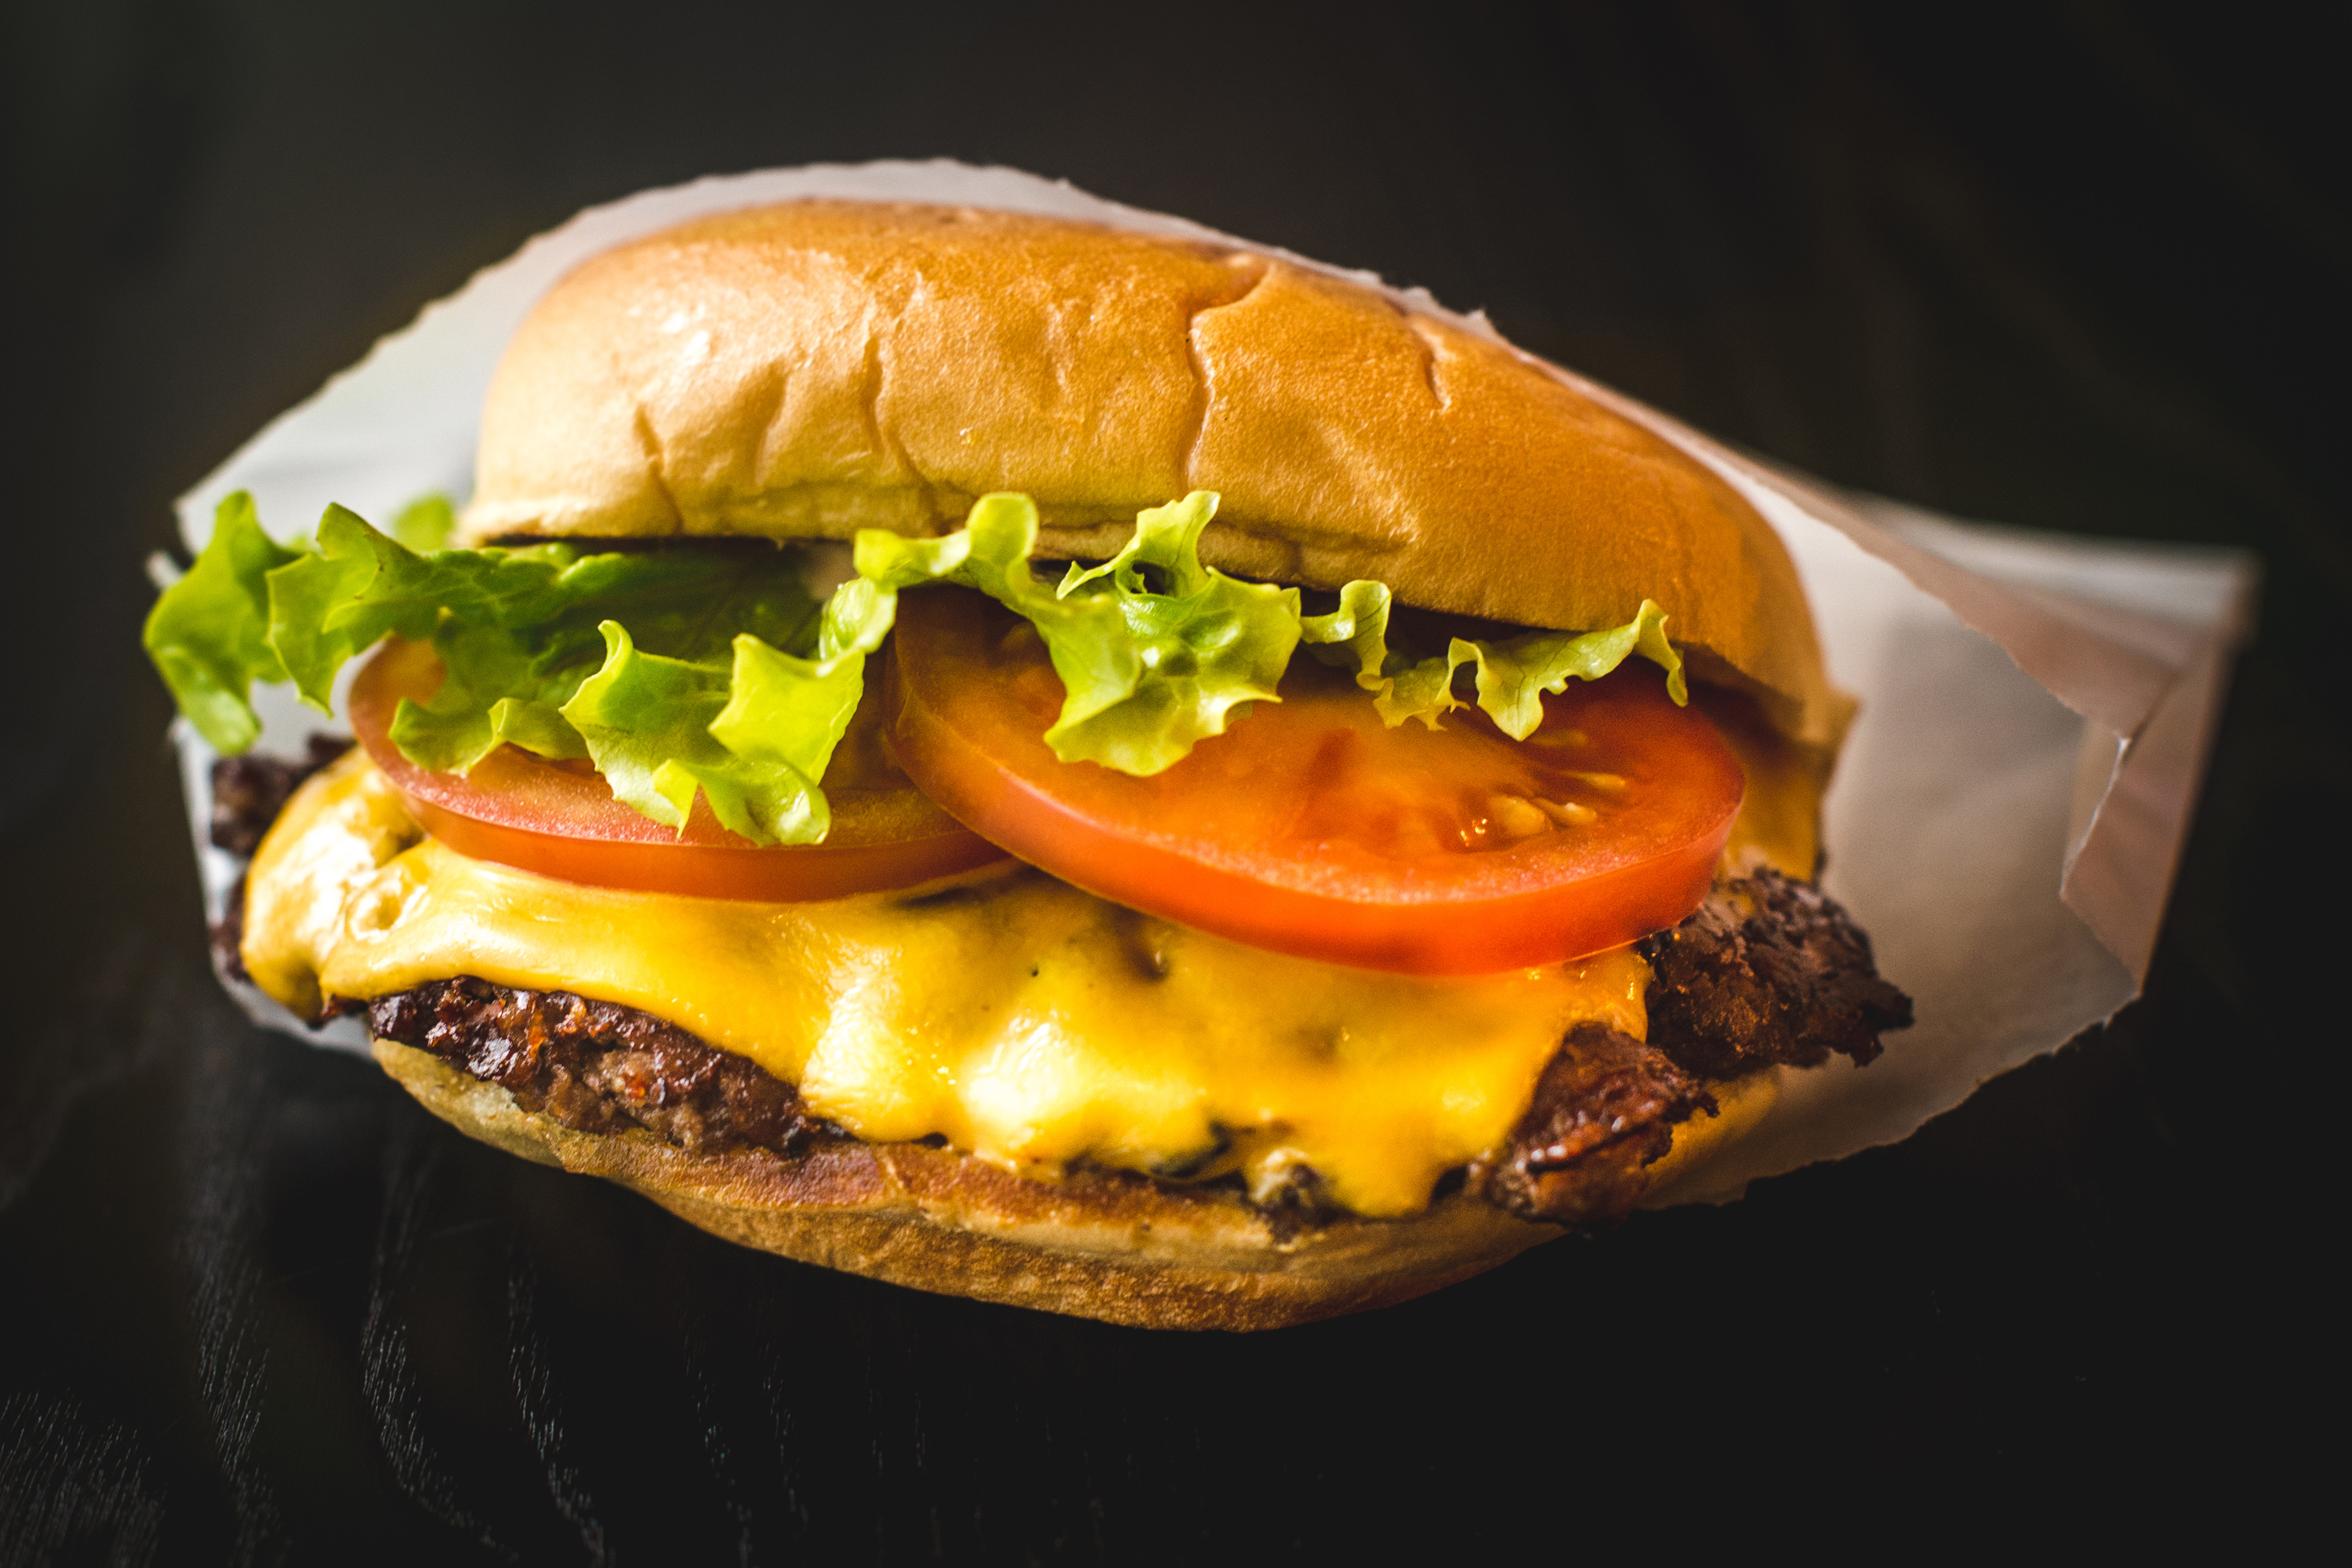 The 20 Best Burgers In NYC - New York - The Infatuation